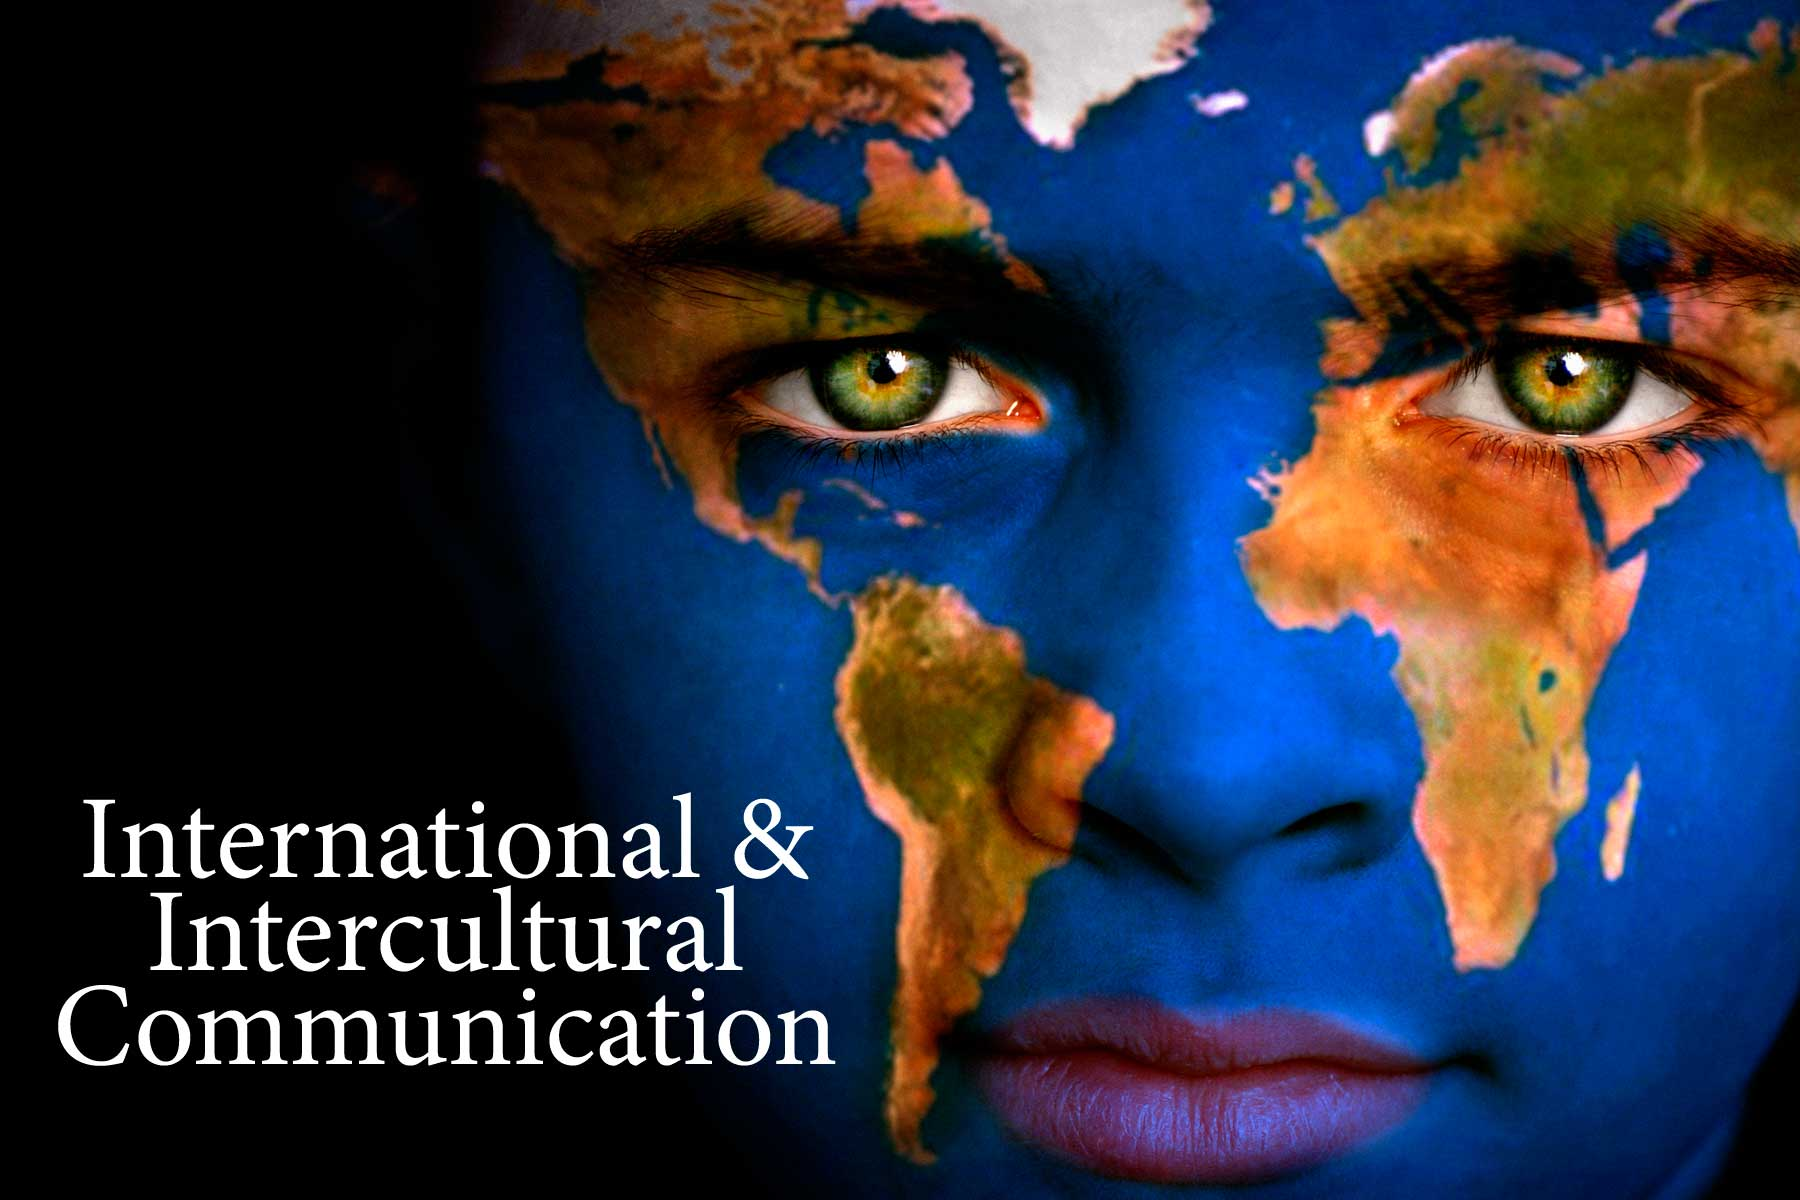 intercultural communication One of only seven master's in intercultural communication programs nationwide, and the only one in northern california the master of arts program in intercultural communication at saint mary's college of california is a two-year course of study in communication challenges and opportunities across cultures.